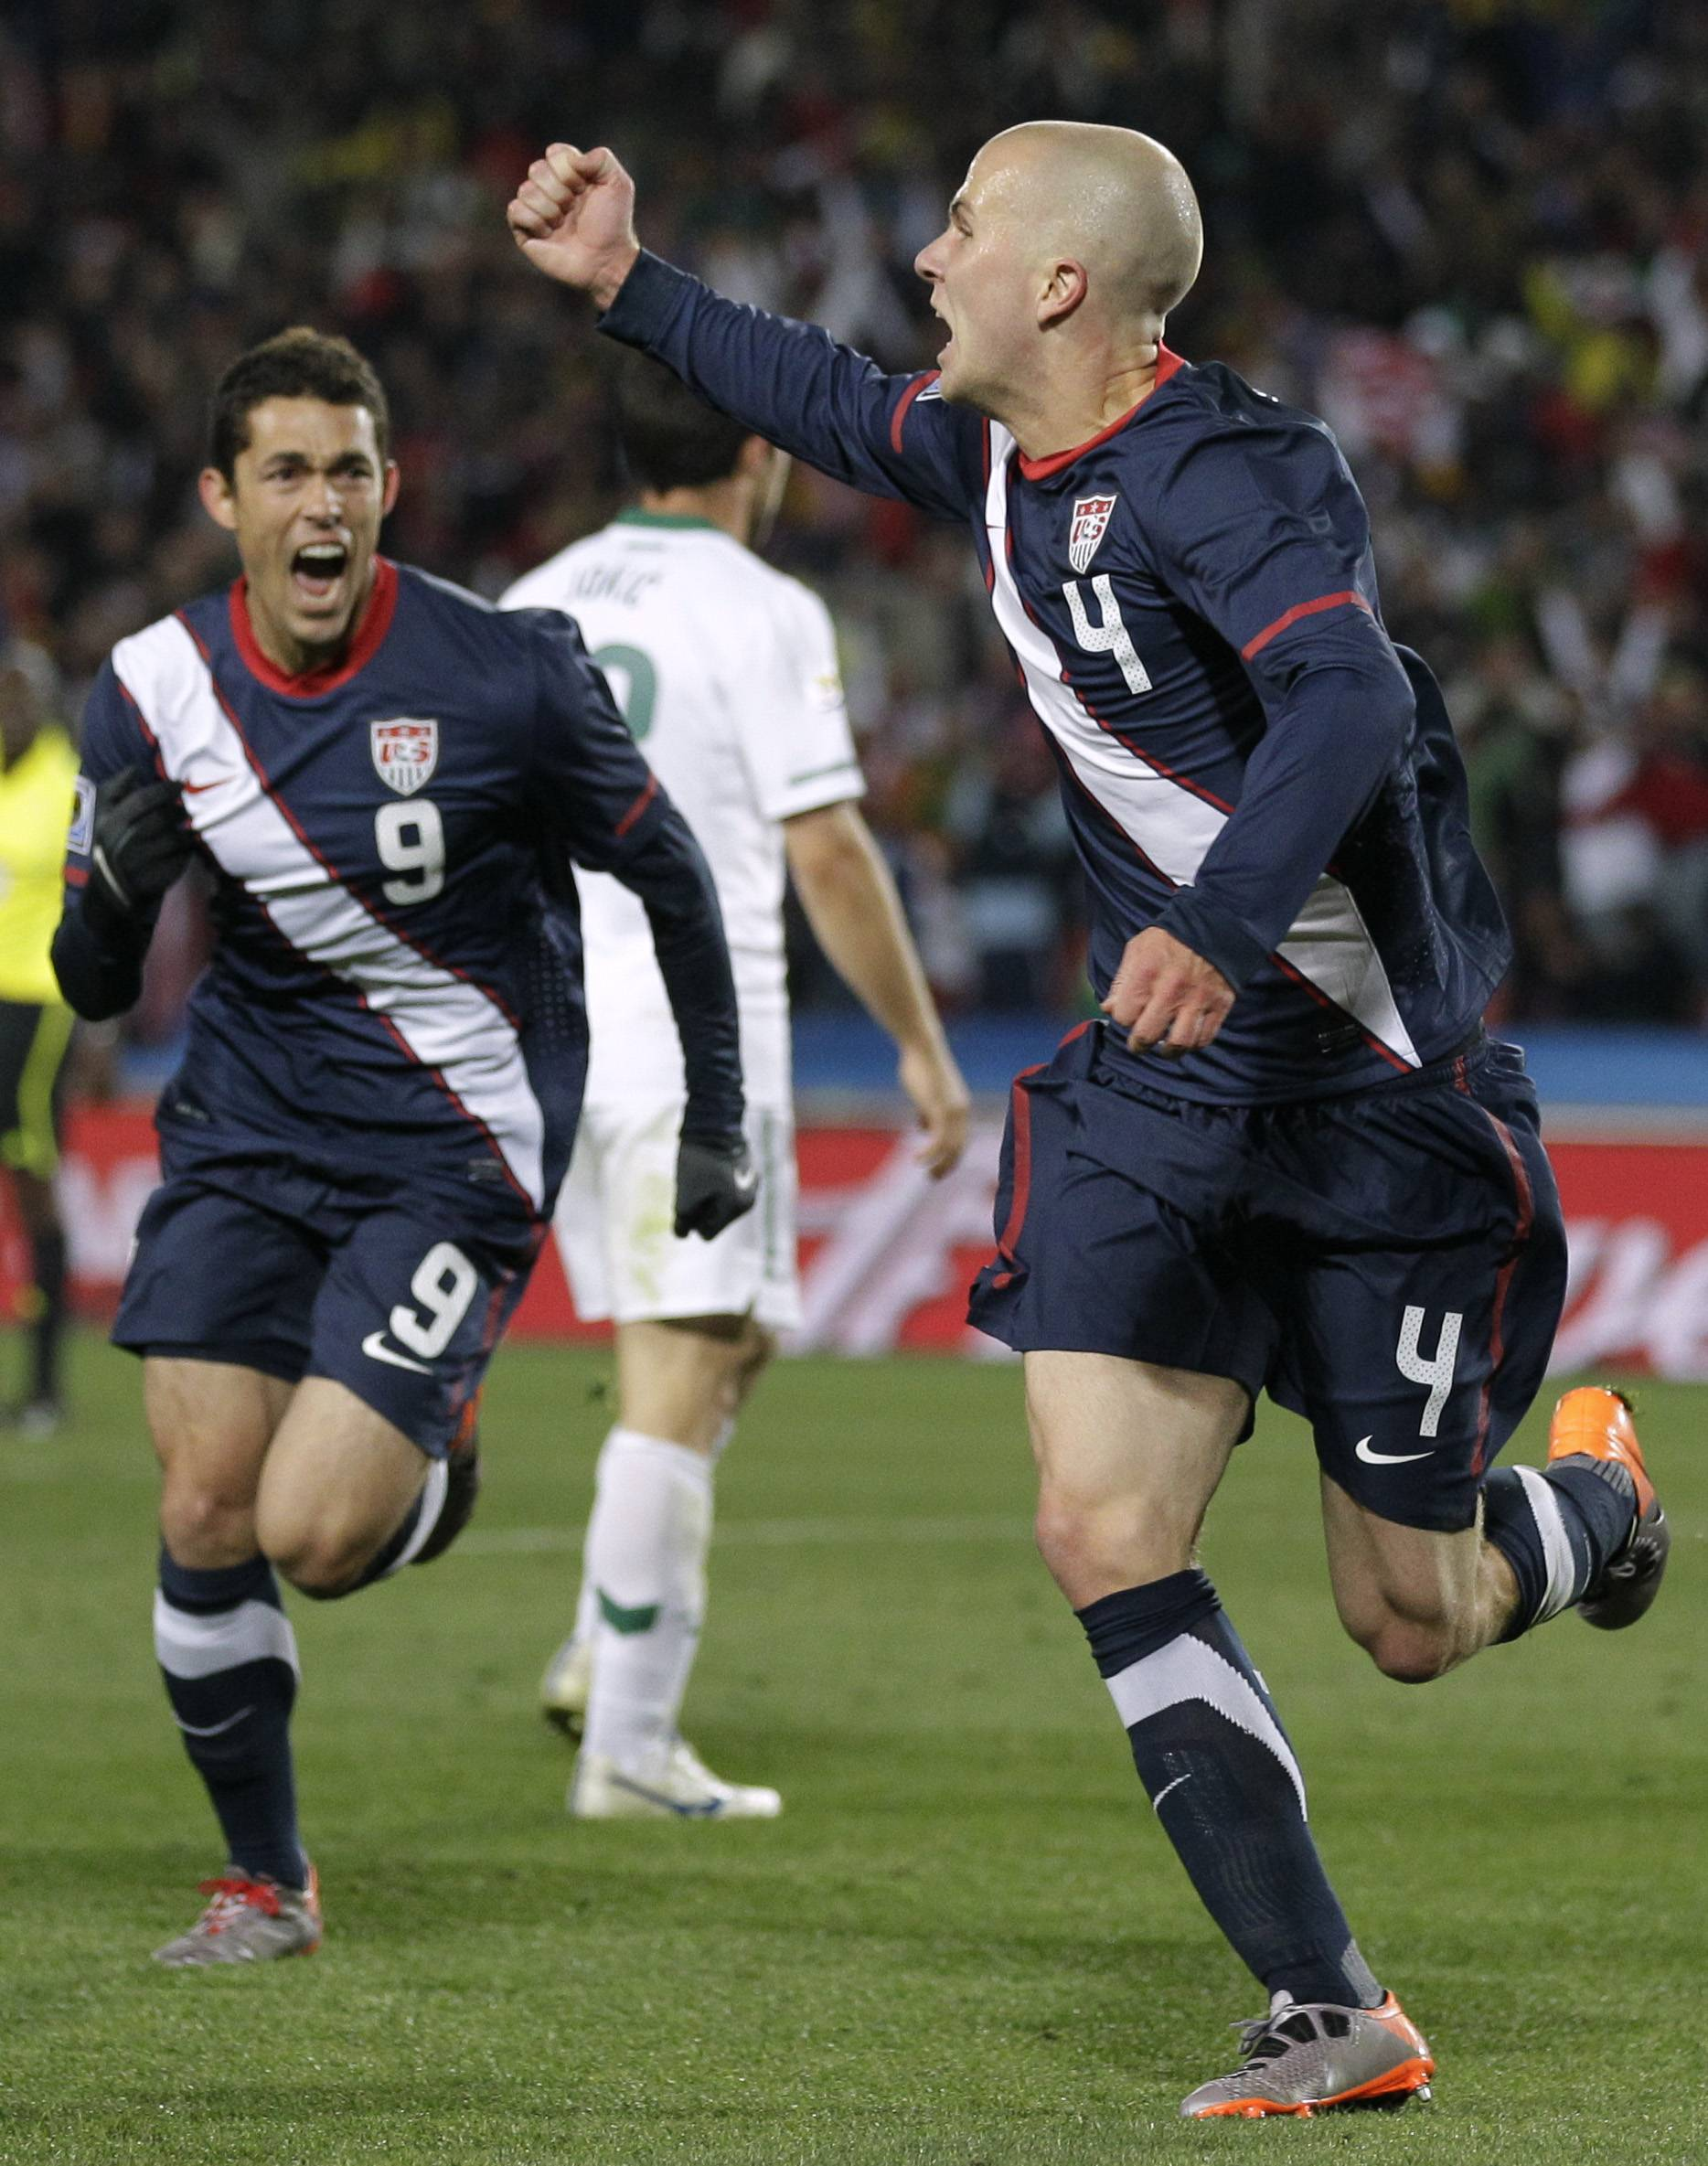 Michael Bradley, who spent part of his youth playing soccer in Palatine, reacts to scoring a goal during a 2010 World Cup match as United States teammate Herculez Gomez, left, joins in the celebration. Bradley and his U.S. teammates beat Ghana 2-1 Monday to open this year's World Cup action.